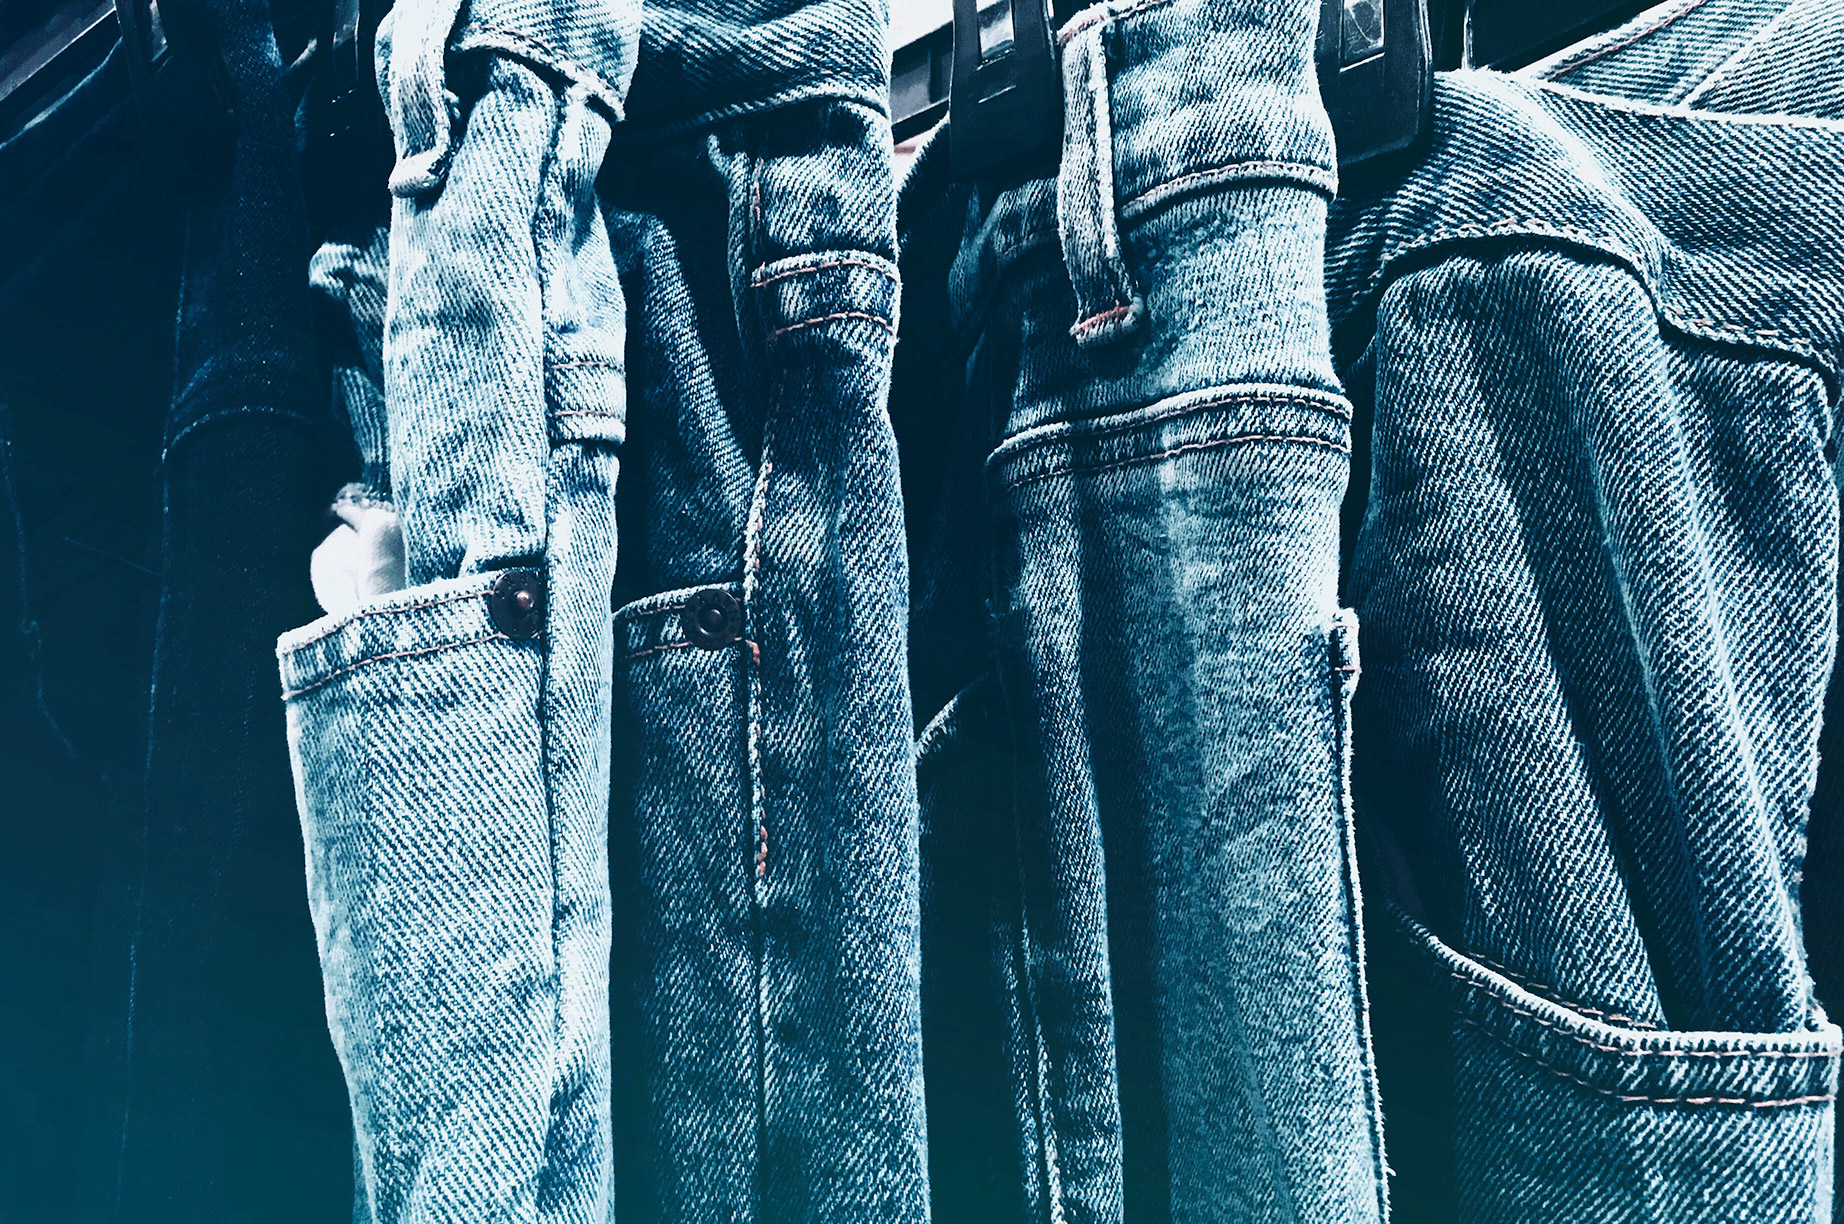 IT'S GOOD TO CARE - All jeans benefit from regular washing! Anyone that tells you otherwise is selling a lifestyle. We require all garments be washed before we can work on them. There are plenty of half truths and mythology online about washing your jeans so we've put together these loose guidelines.